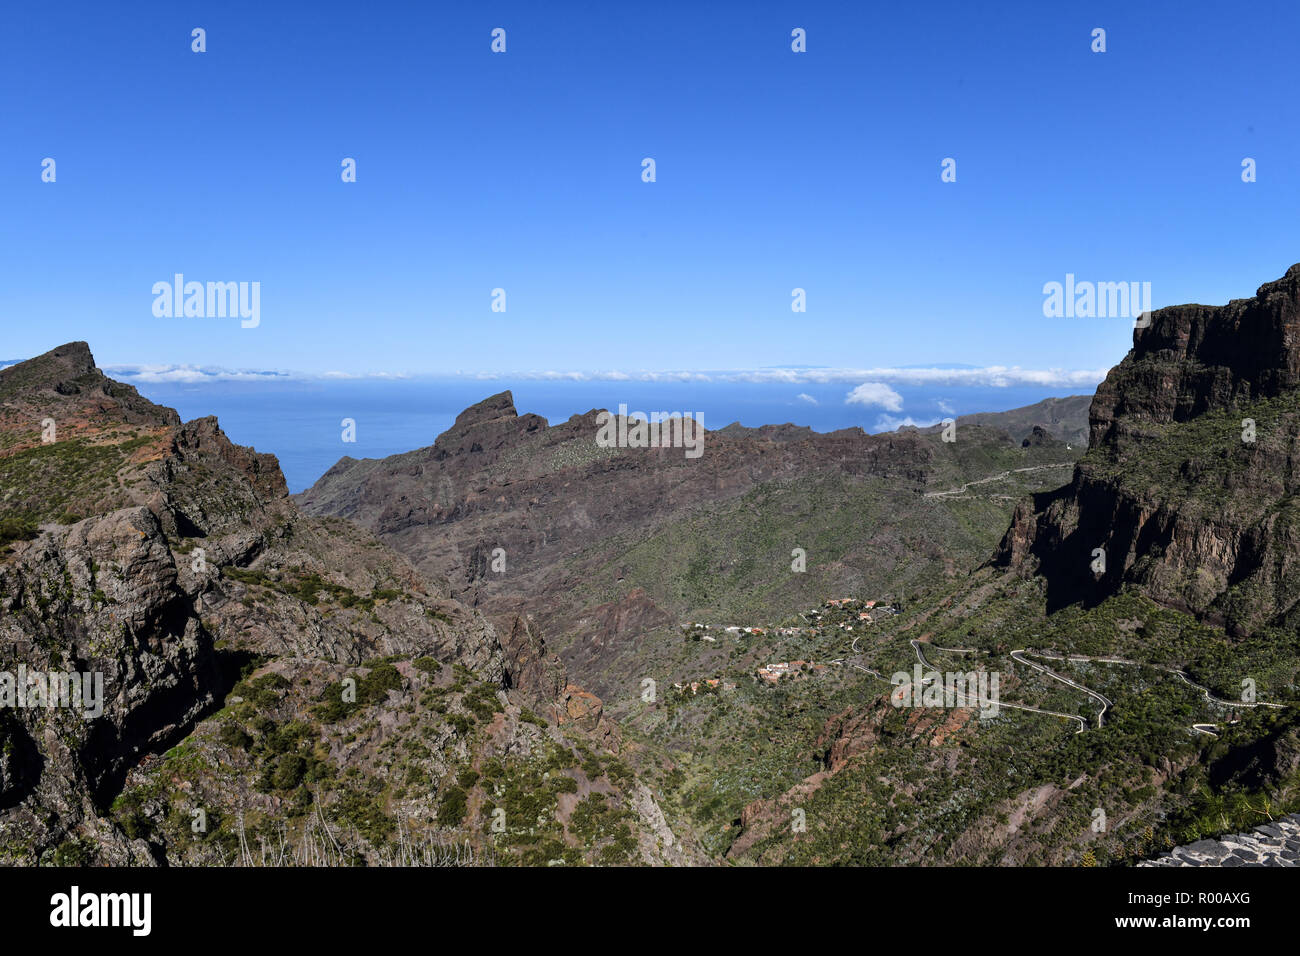 Spain; Canary Islands: Tenerife. Winding mountain road in the Teno Rural Park. *** Local Caption *** Stock Photo